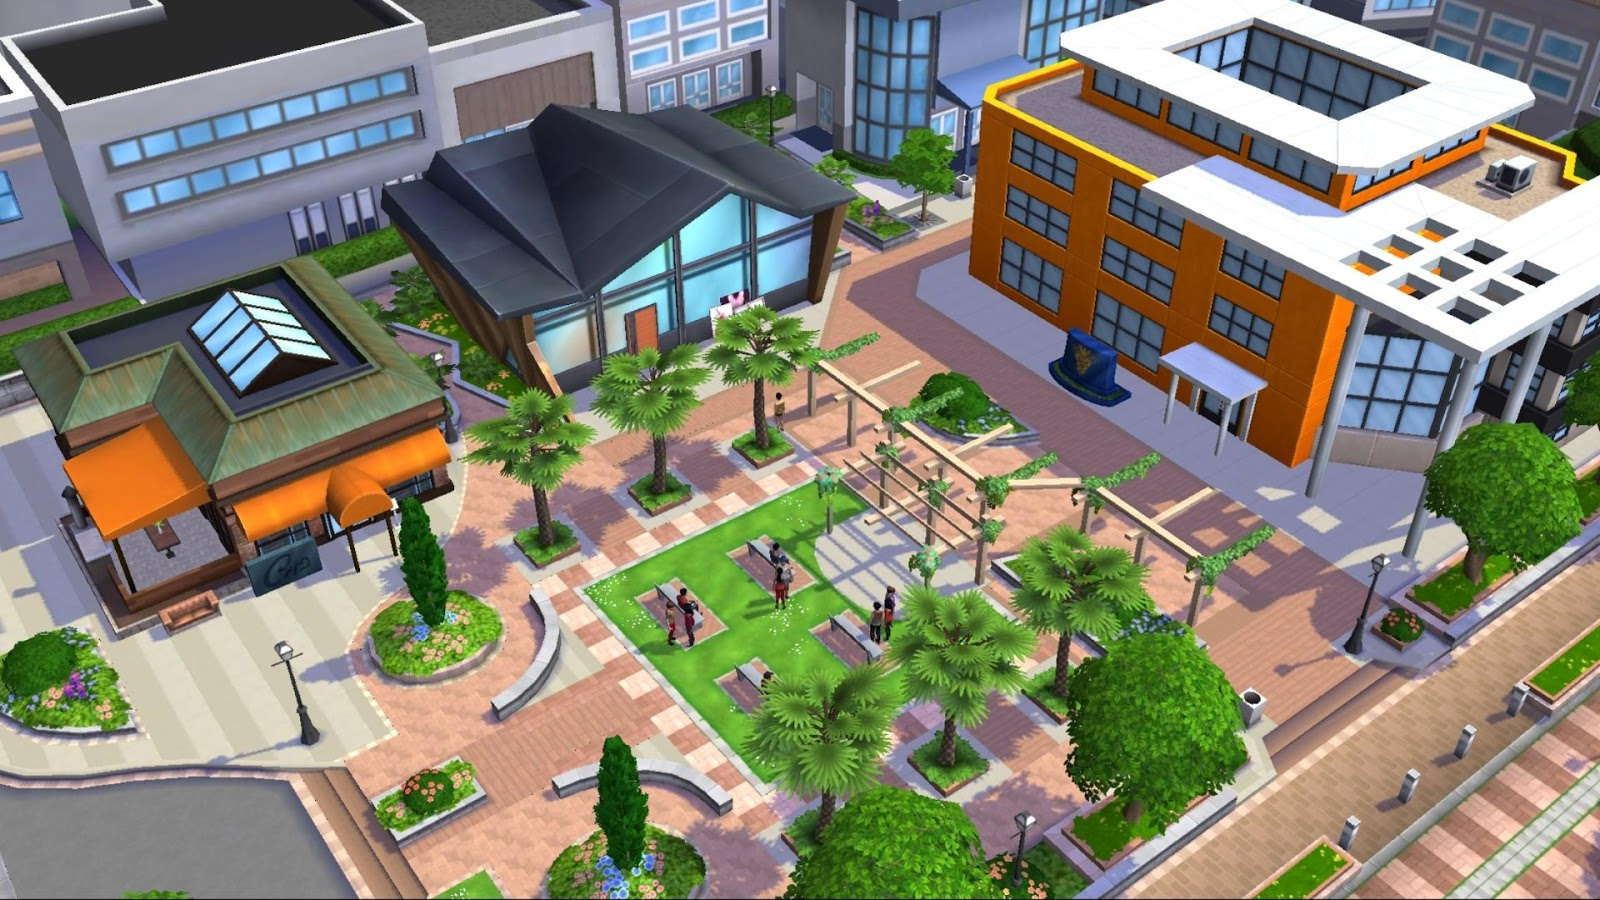 The Sims Mobile Just Recently Soft Launched In Brazil Having Written A  Release Announcement The Other Day, I Wanted To Circle Back And Explore The  Gameplay